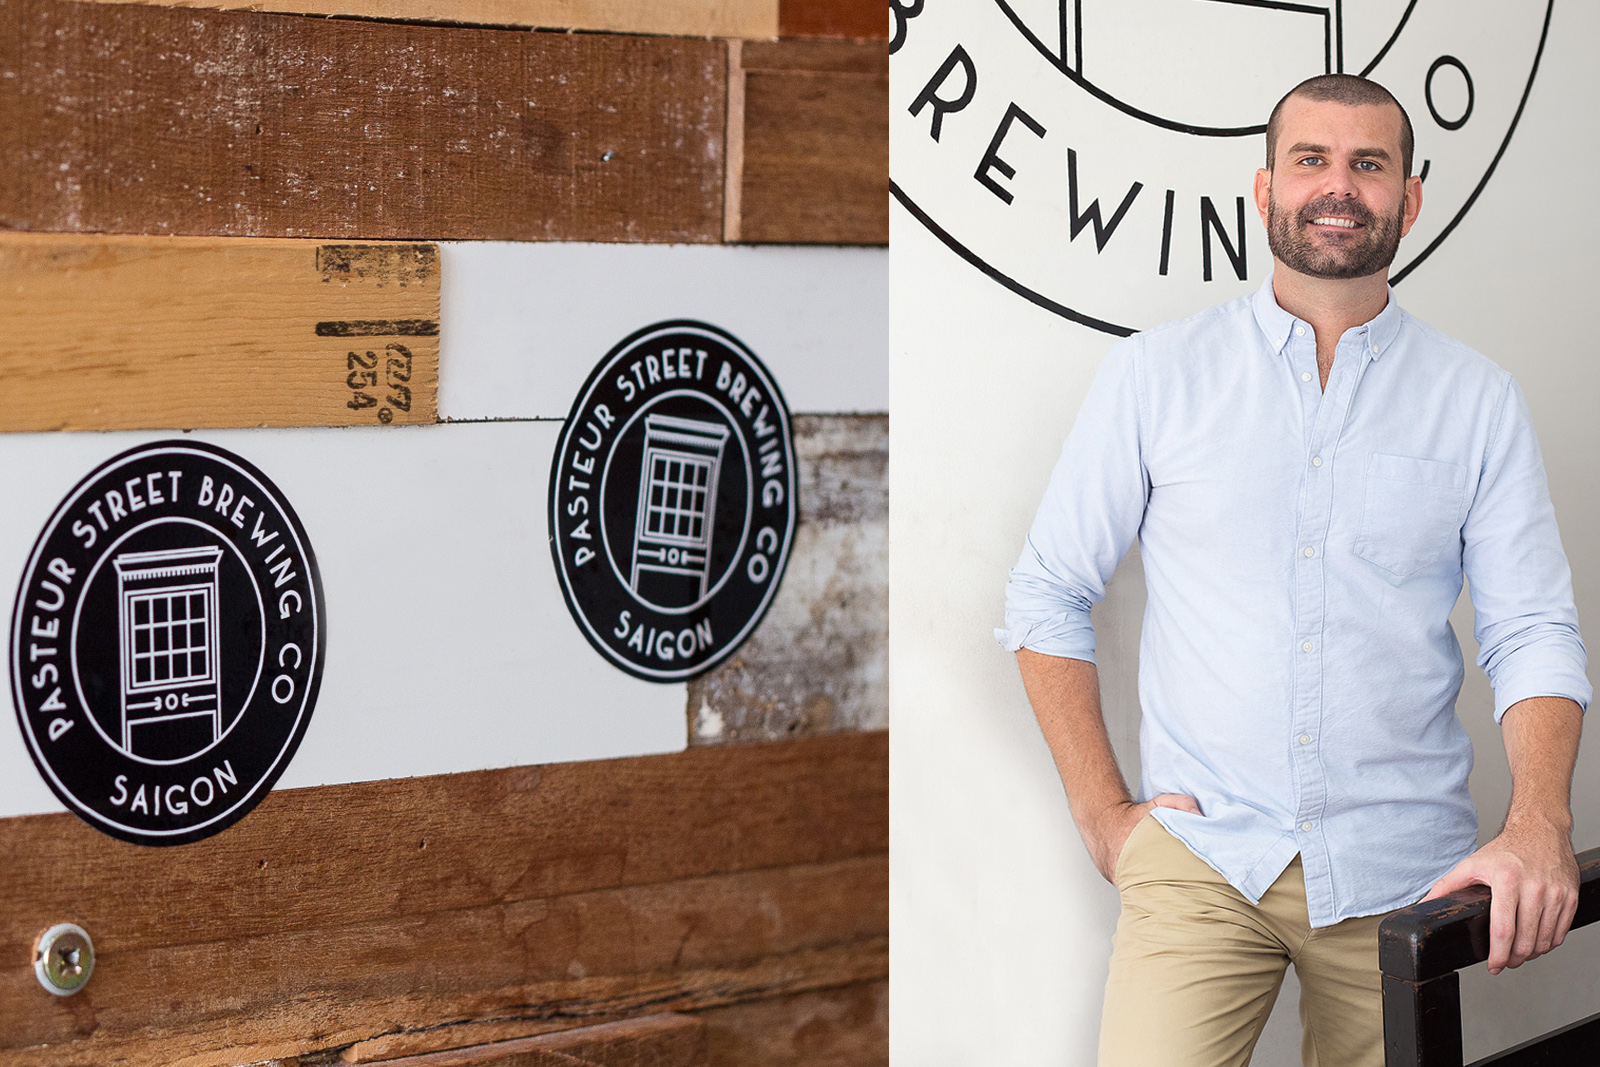 Left: the Pasteur Street Brewing Company logo.Right: Pasteur Street's 32-year-old American founder, John Reid.